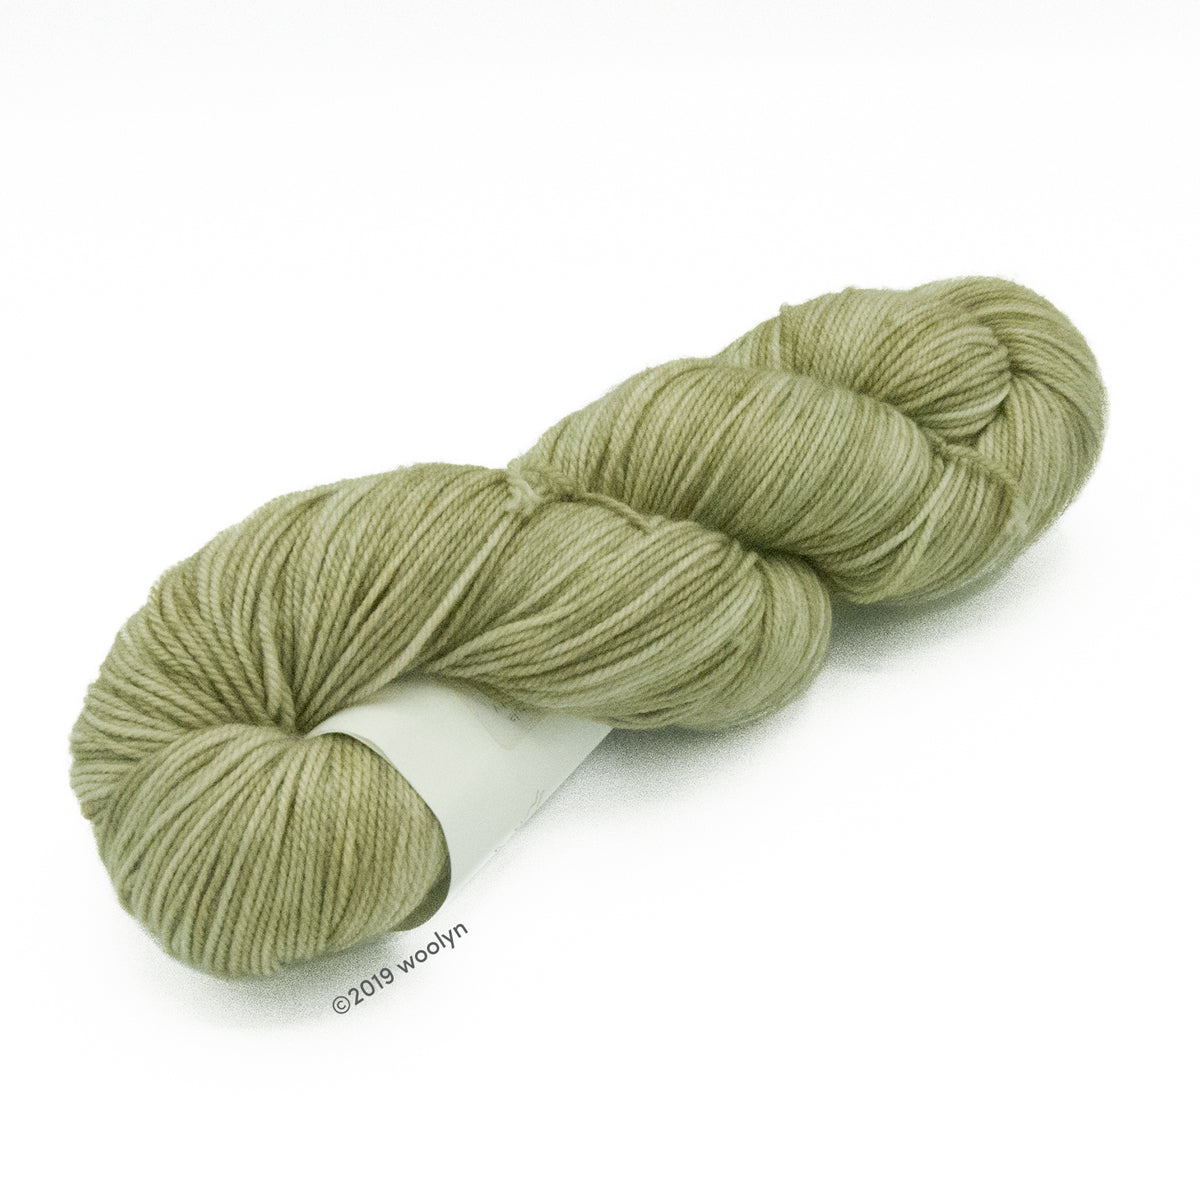 Hand dyed  fingering weight yarn in pale greyish green  tonal shades twisted into a skein.